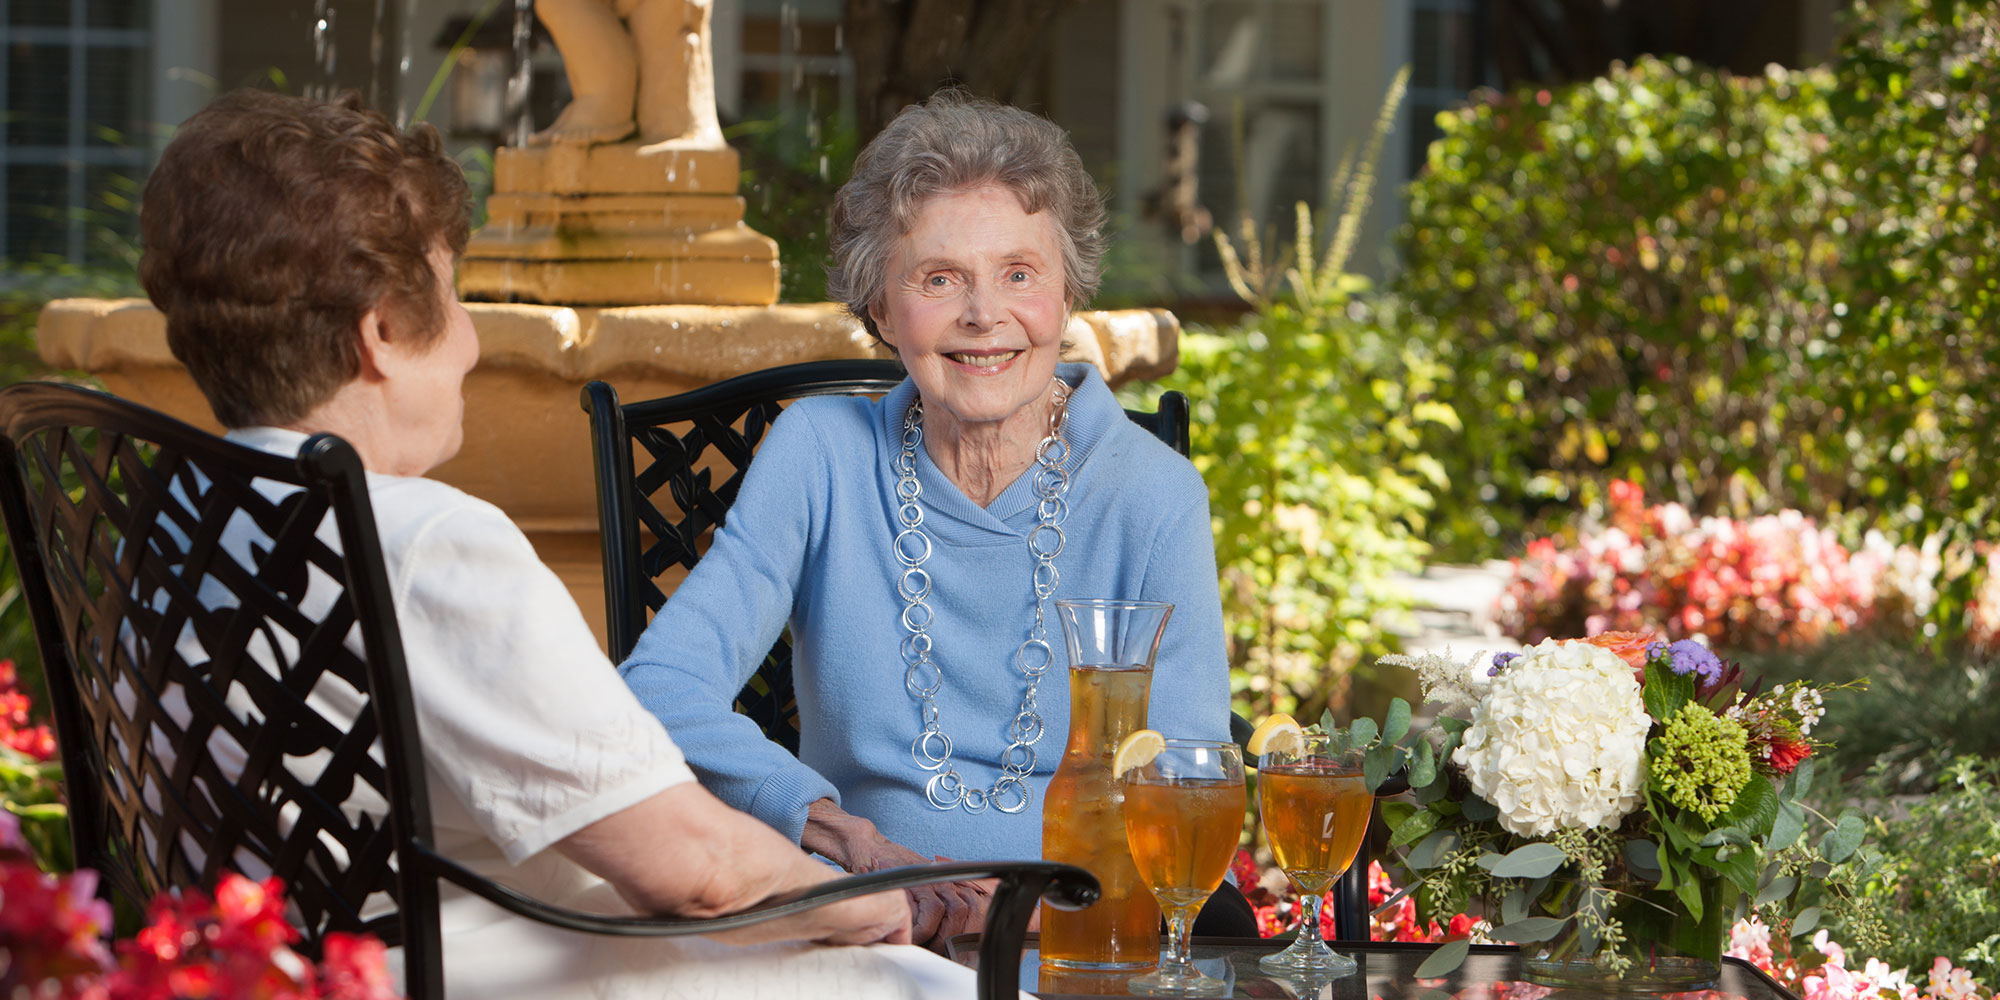 Two women enjoying iced tea on the outdoor courtyard.